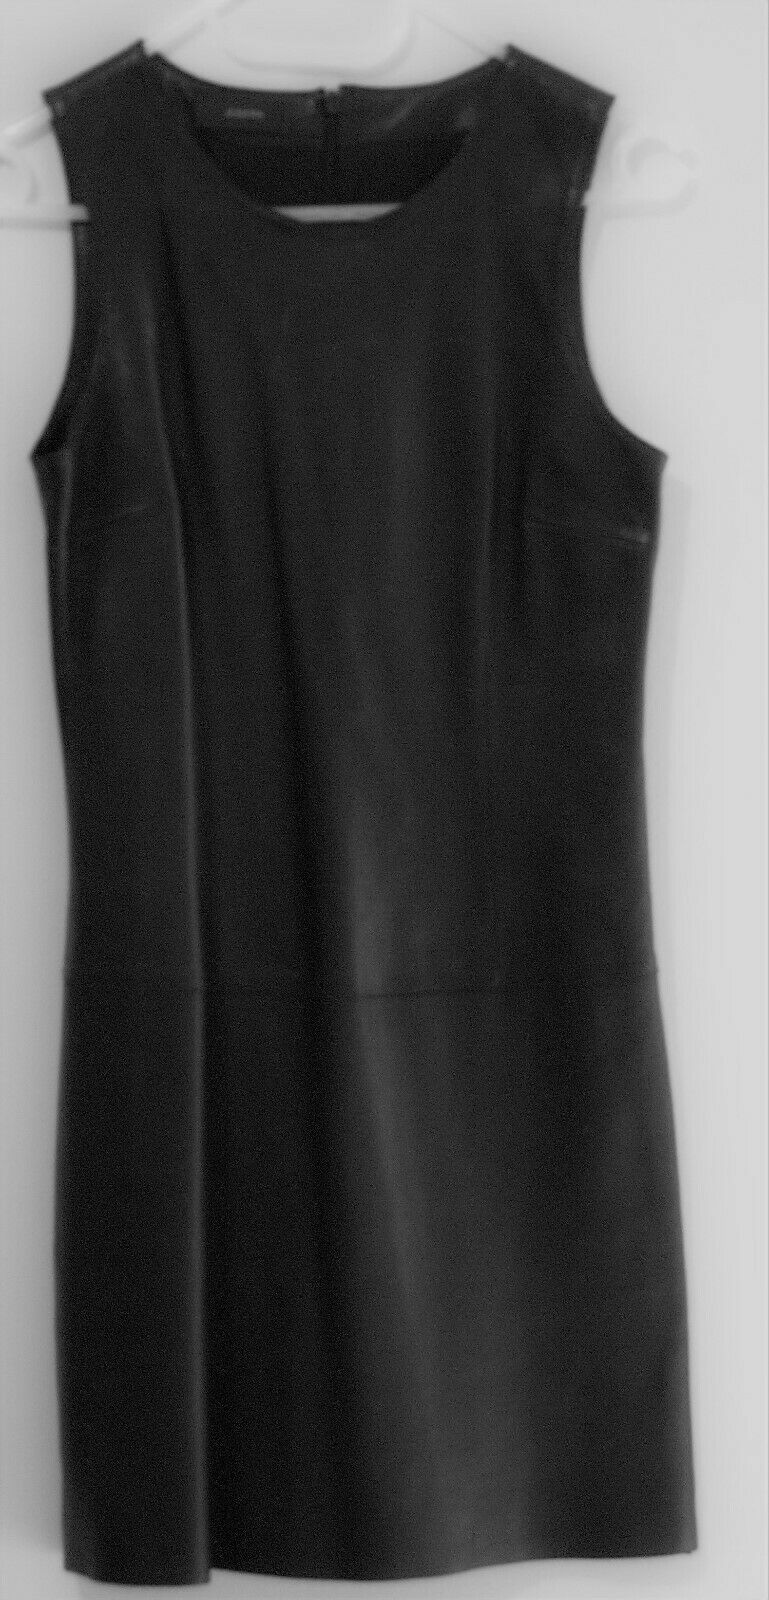 NUOVO RARO JOSEPH in pelle Brend NERO Mini Dress Dimensione 36